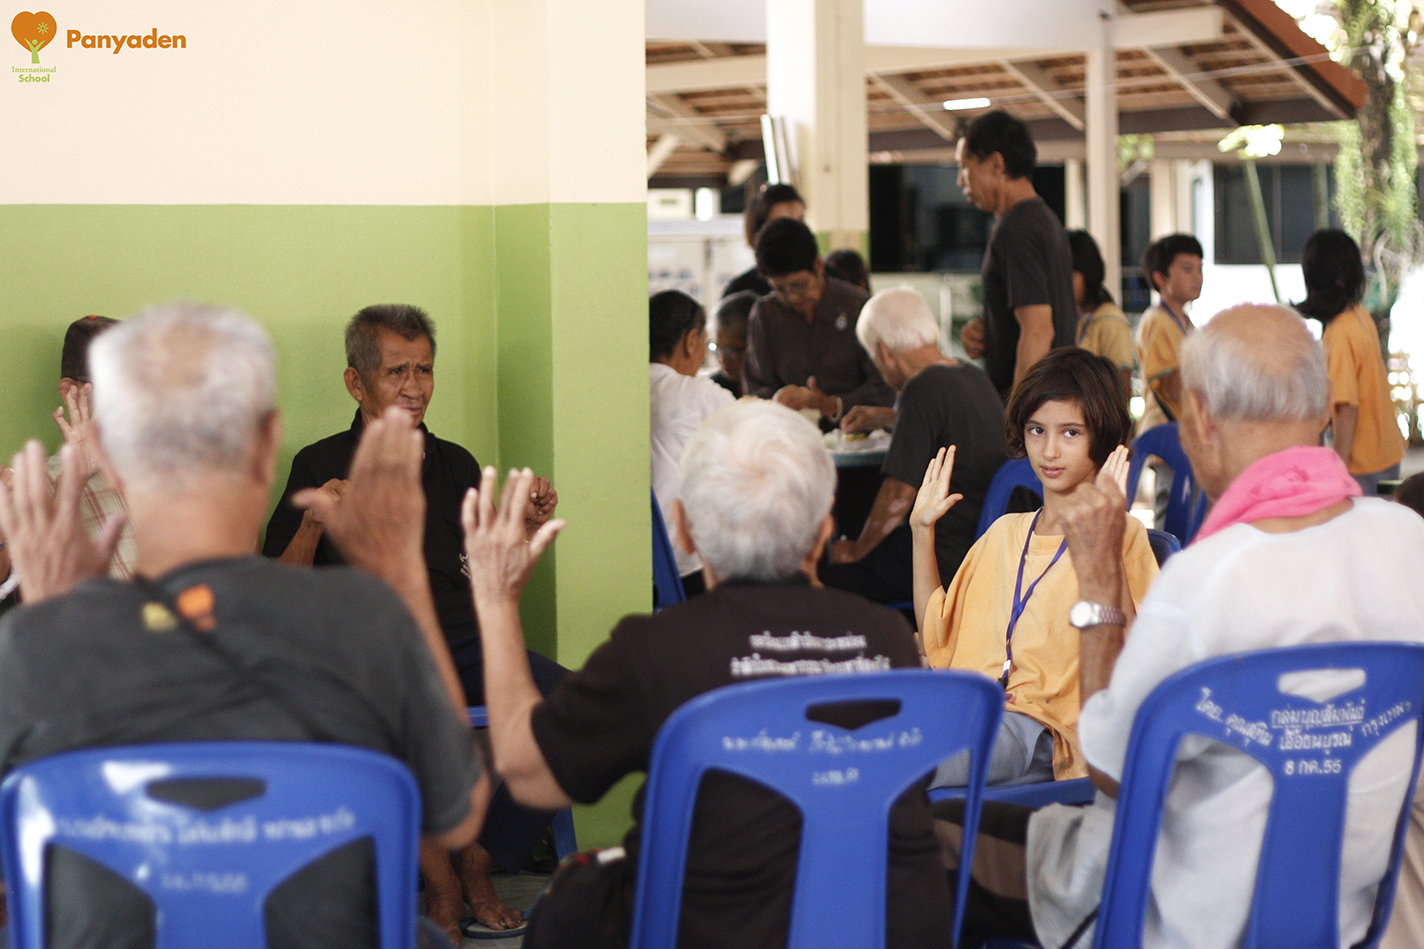 Time for games! Panyaden Social Contribution Day at elder aId home in Chiang Mai